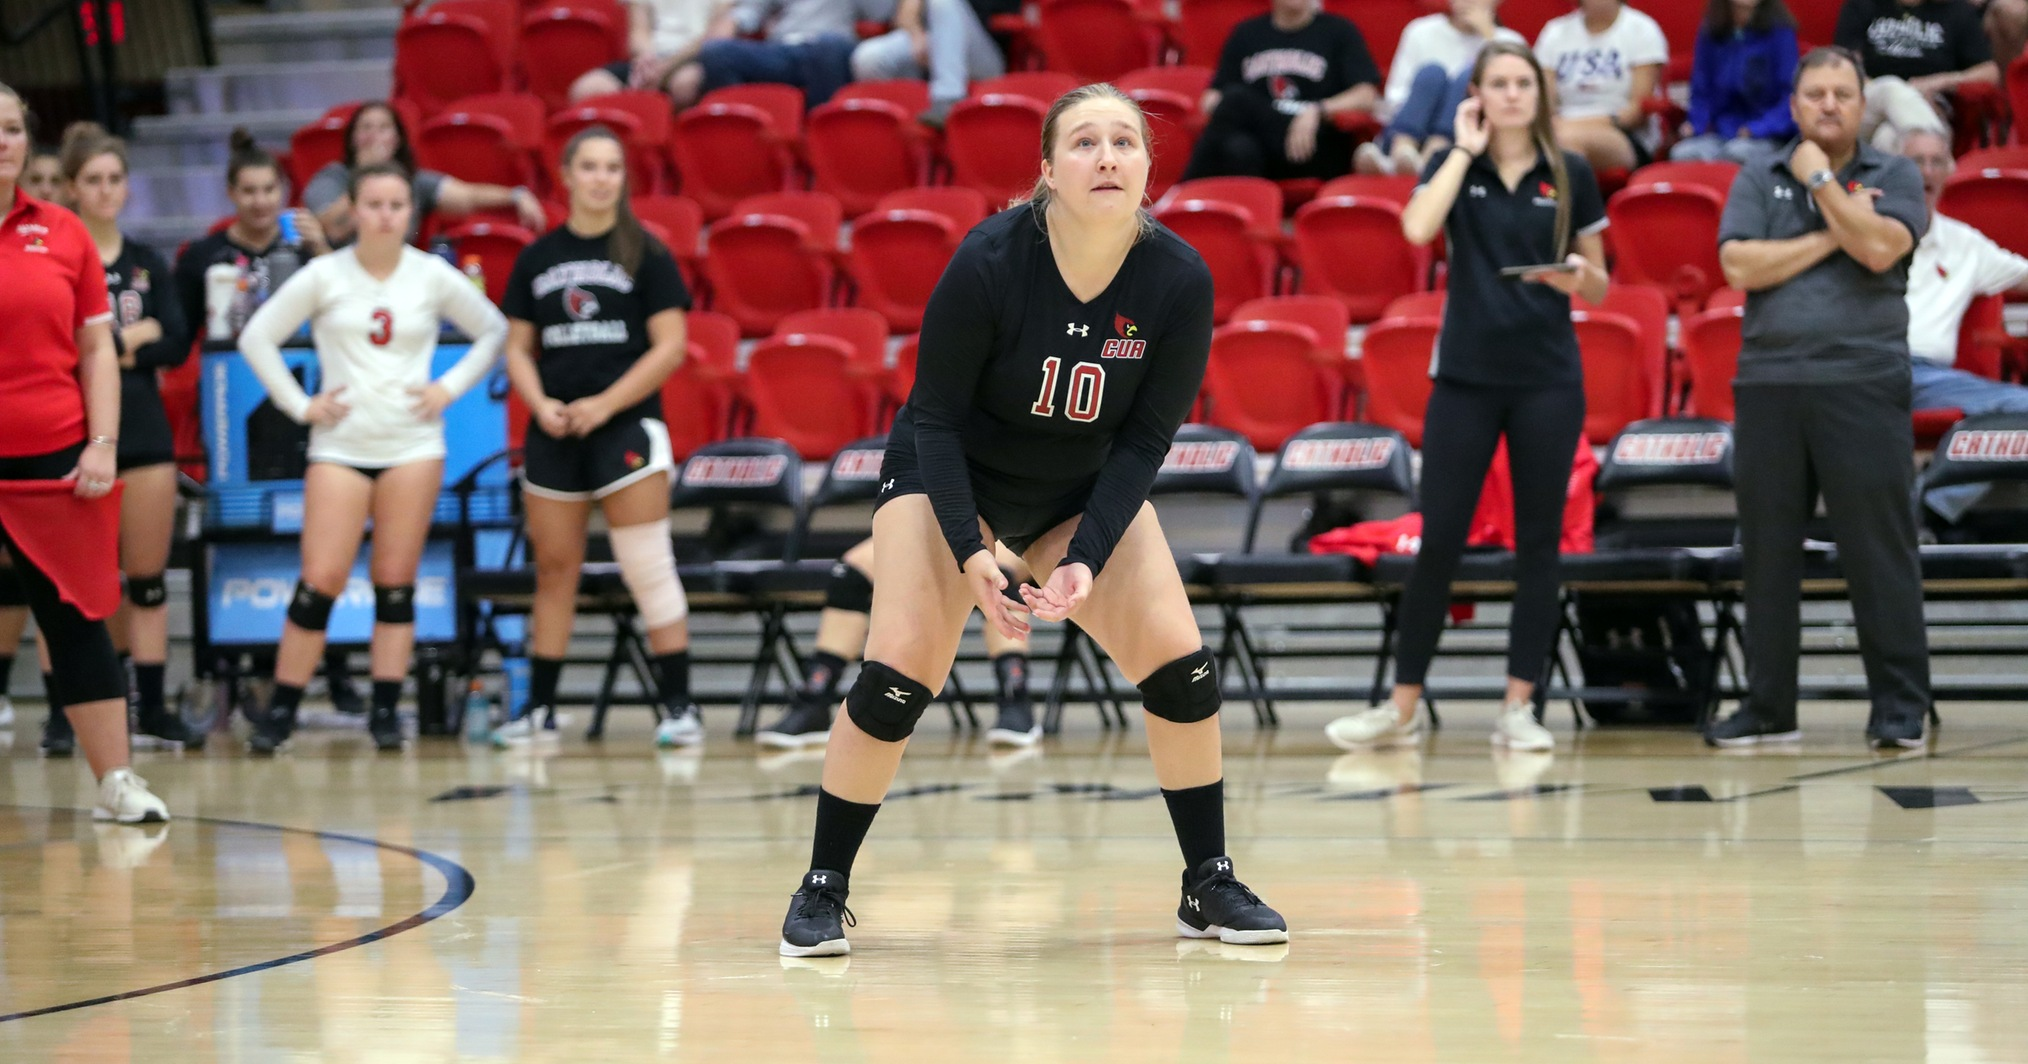 Cardinals Edge McDaniel in Another Five-Set Thriller